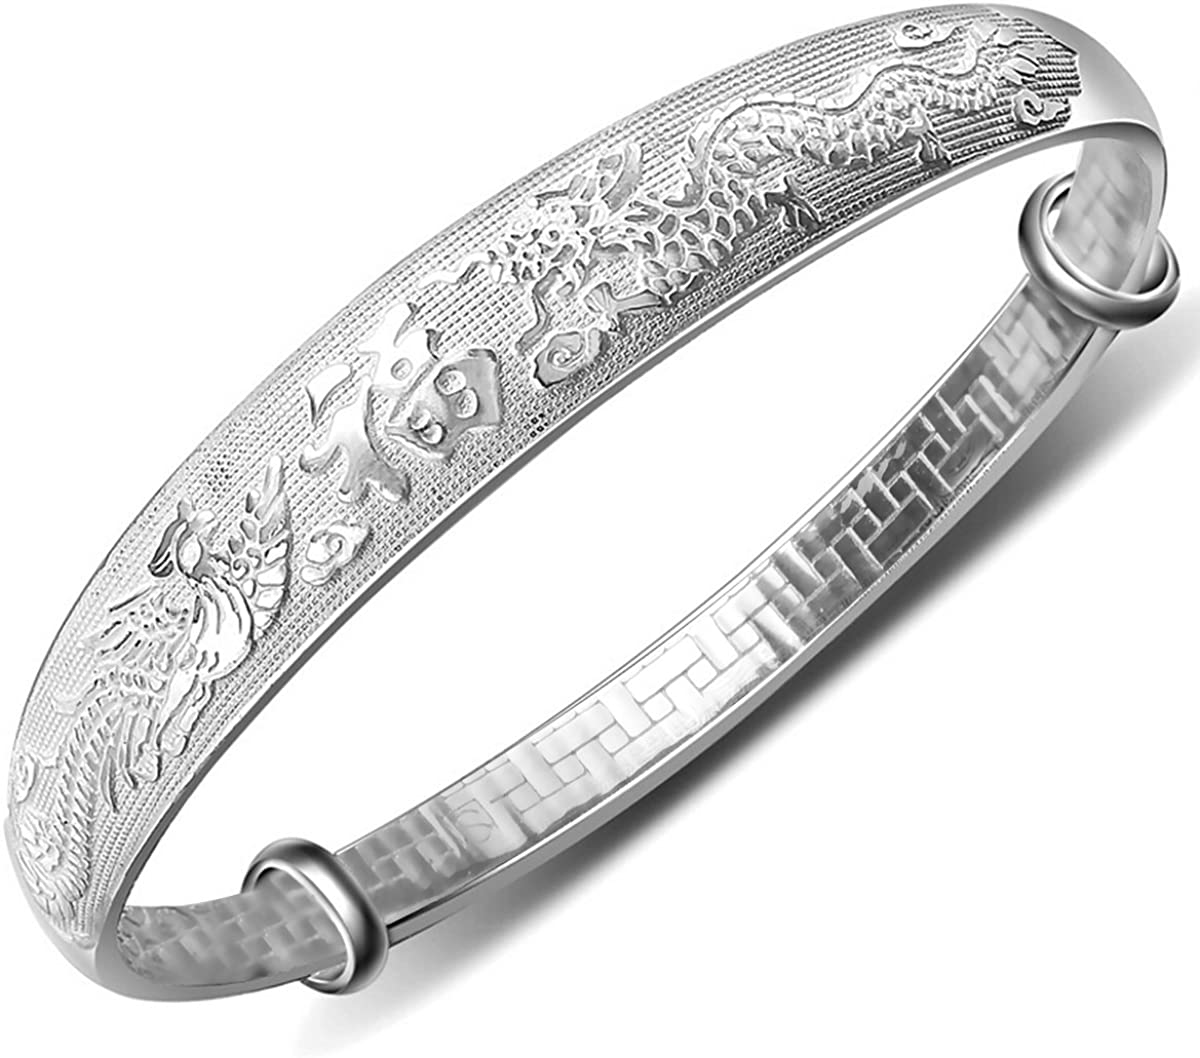 Merdia Women's Manufacturer direct delivery 999 Solid Sterling Phoenix Dragon Selling rankings Chinese Silver